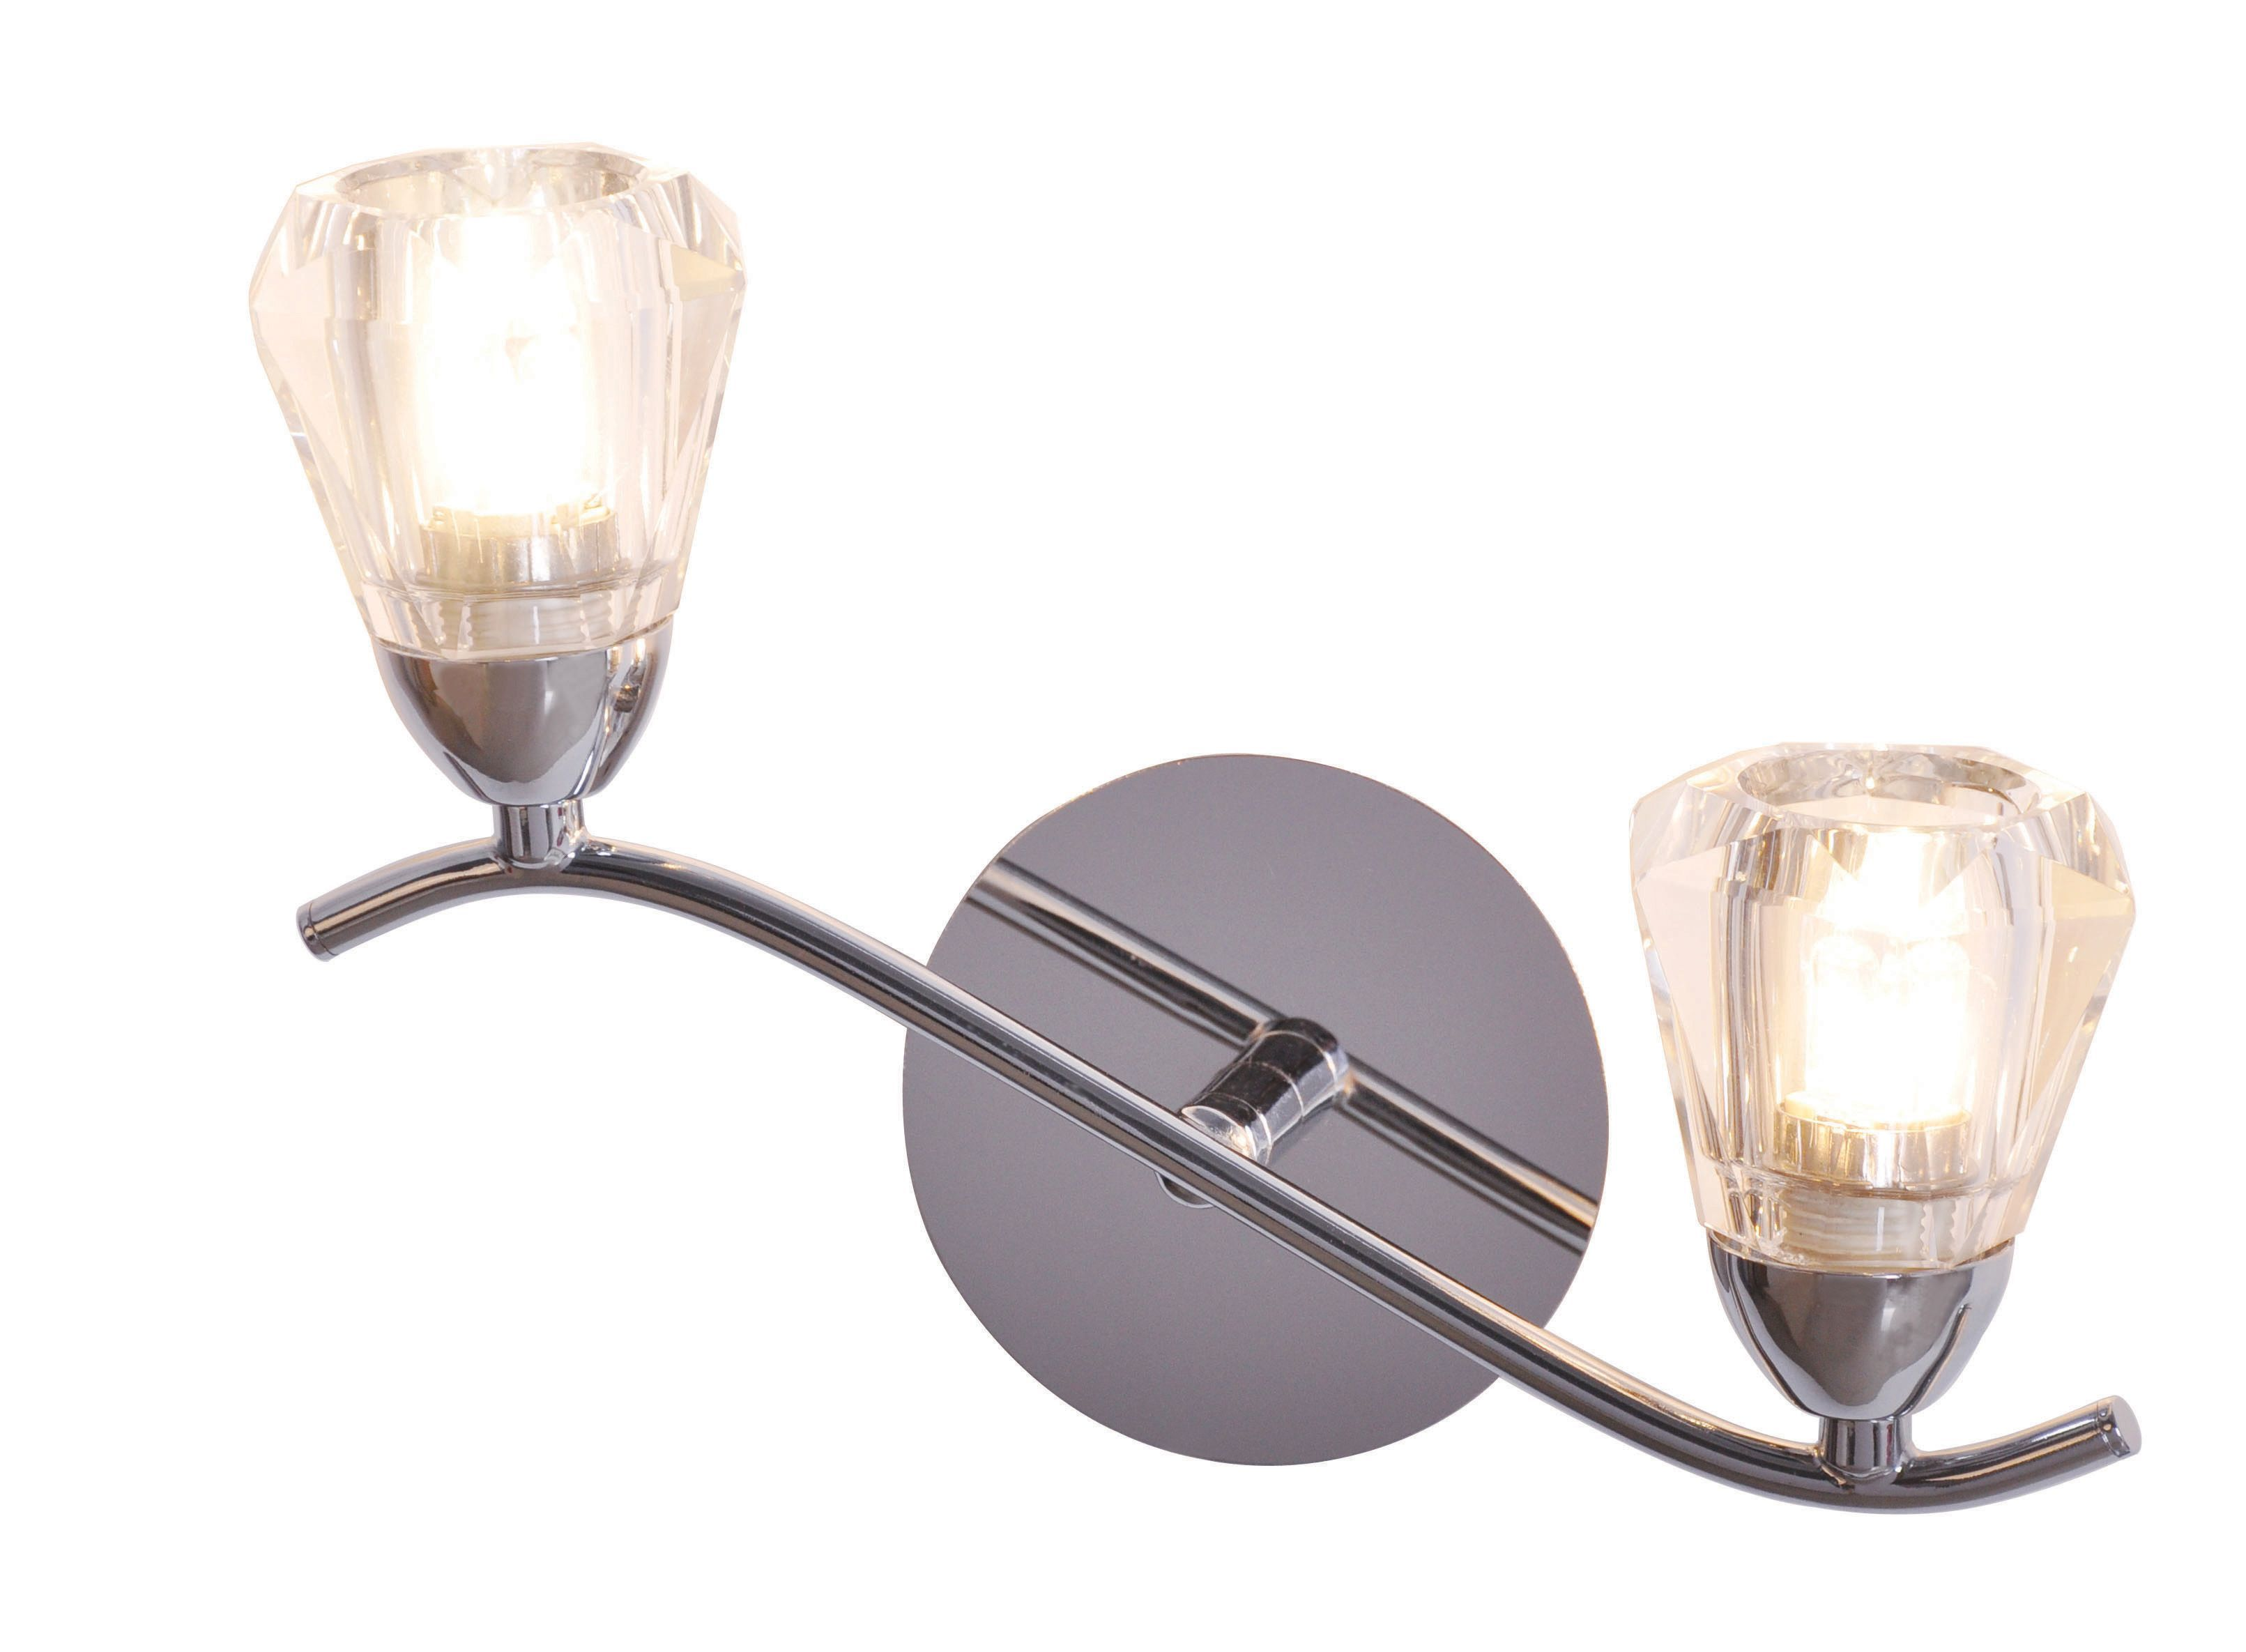 Kinsell nickel effect double wall light departments diy at bq aloadofball Image collections